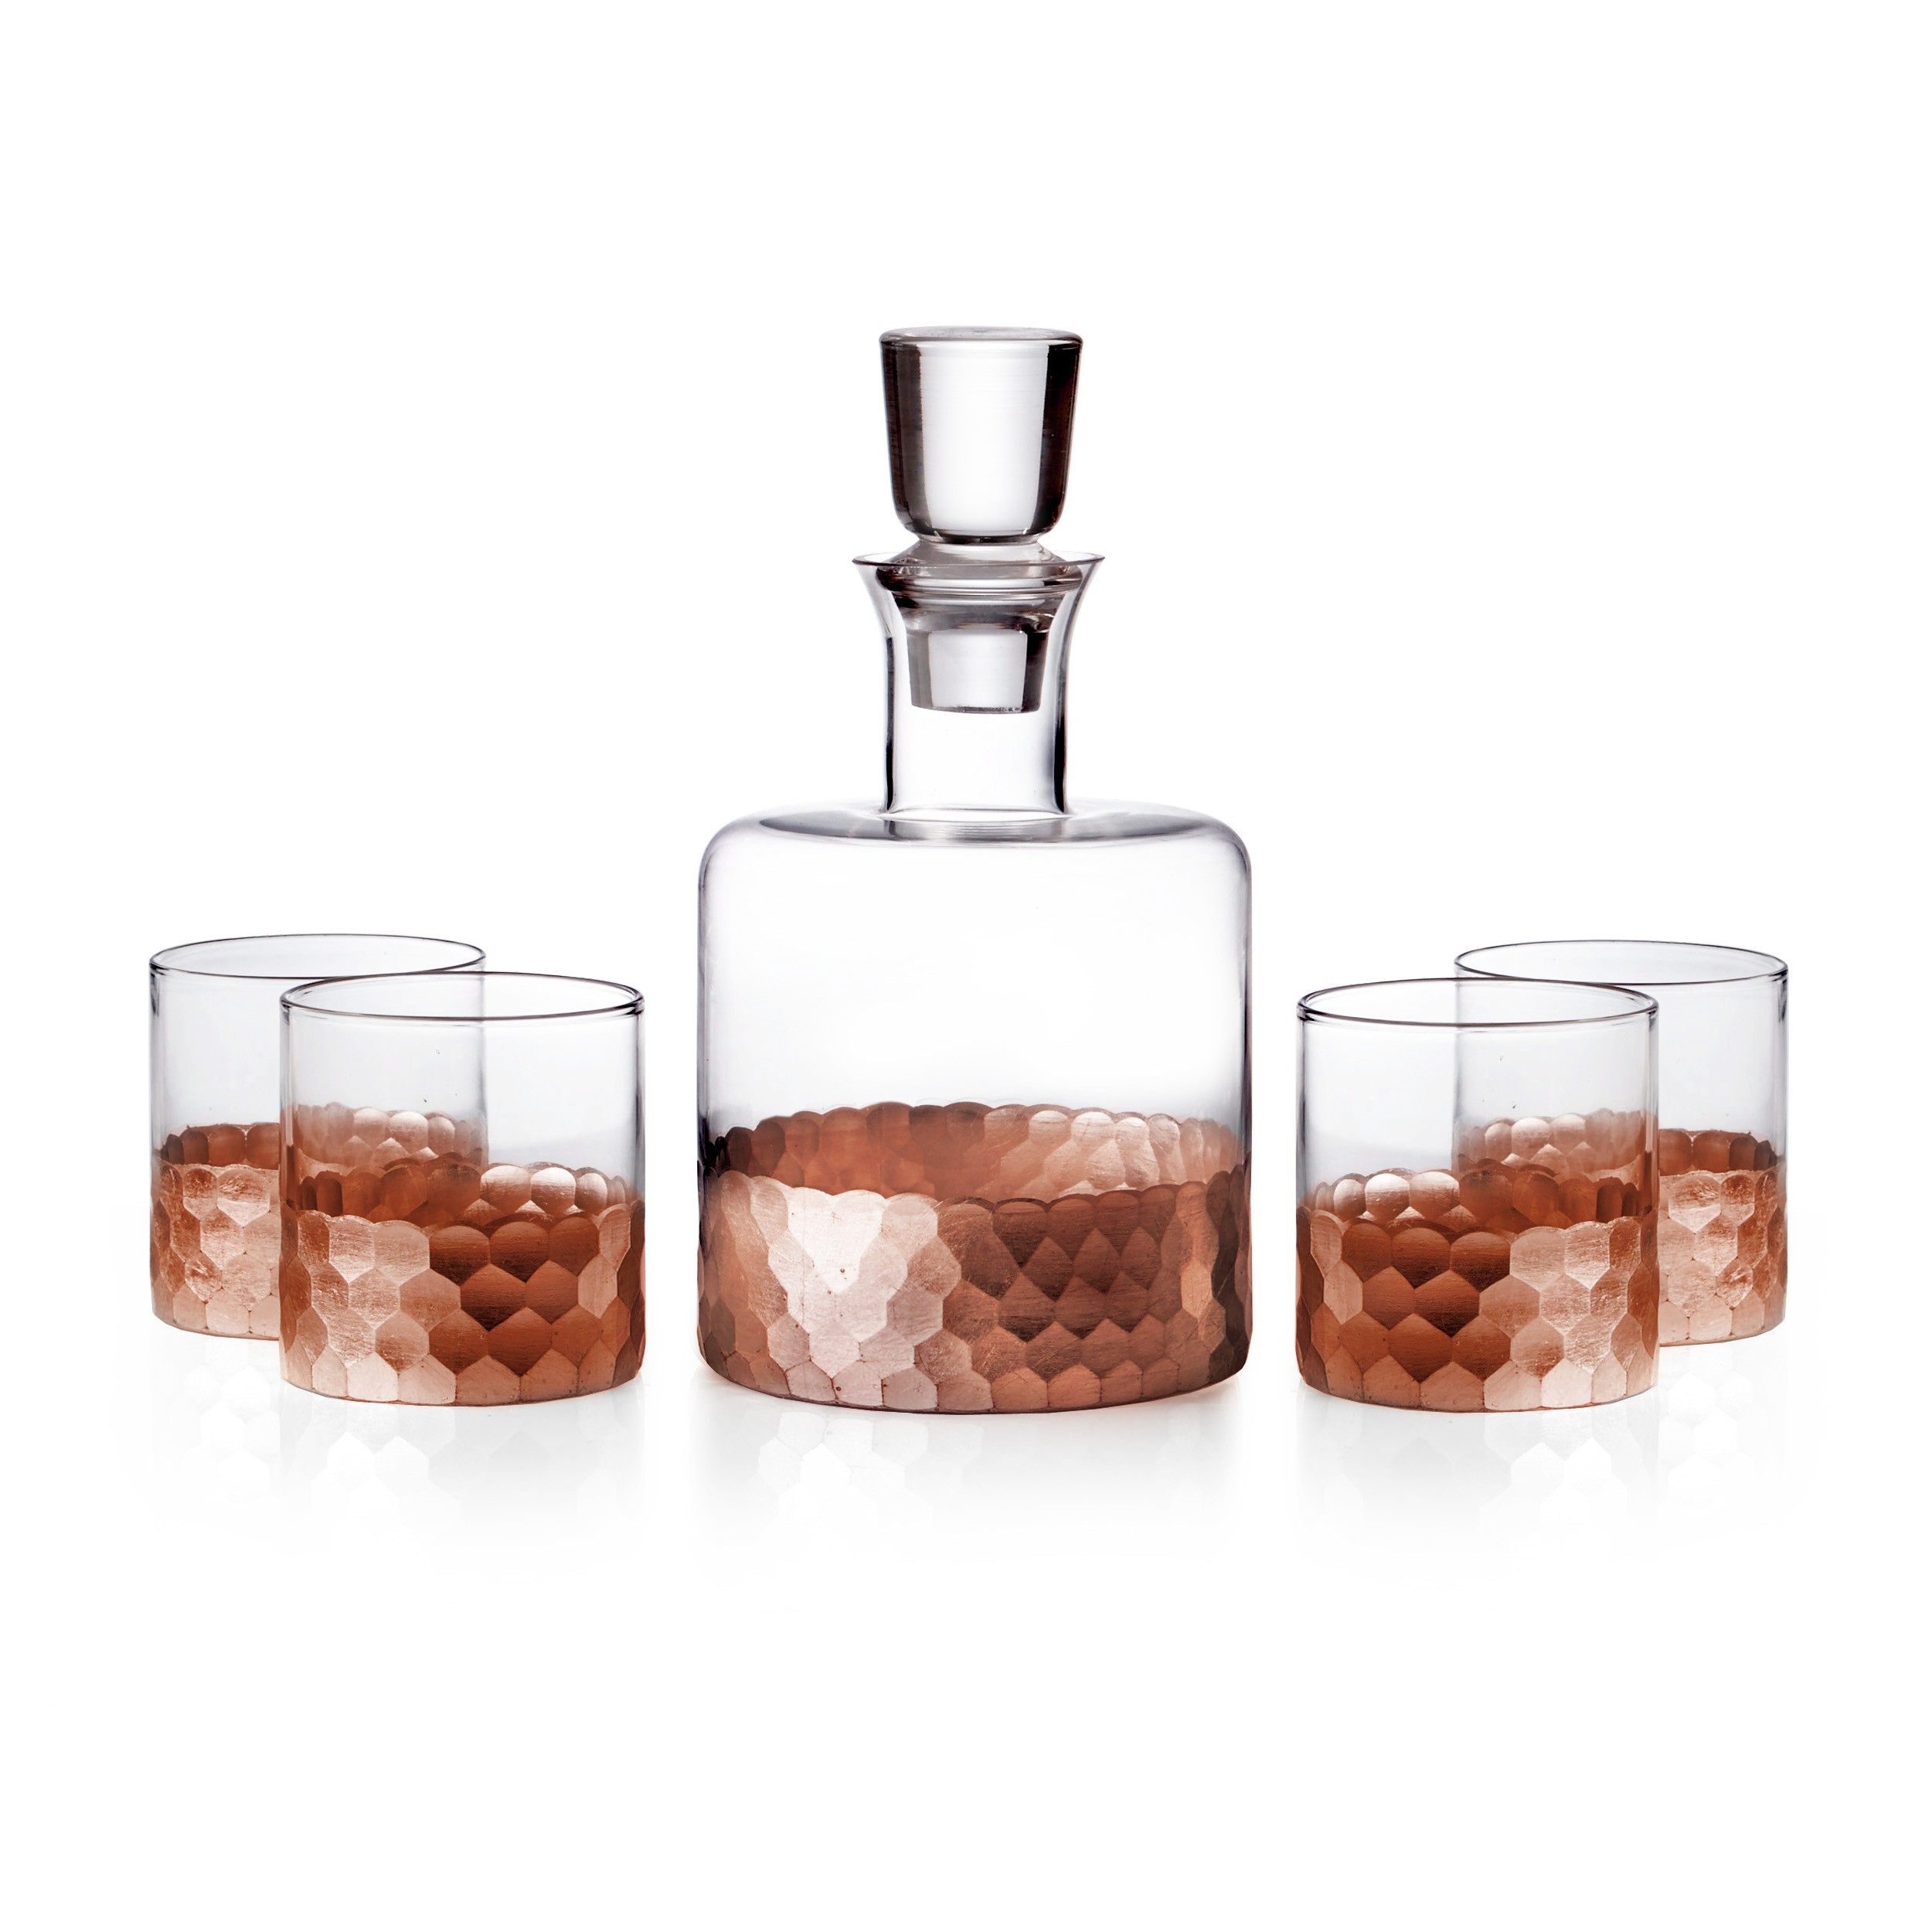 Fitz & Floyd Daphne 5 Piece Whiskey Decanter Set